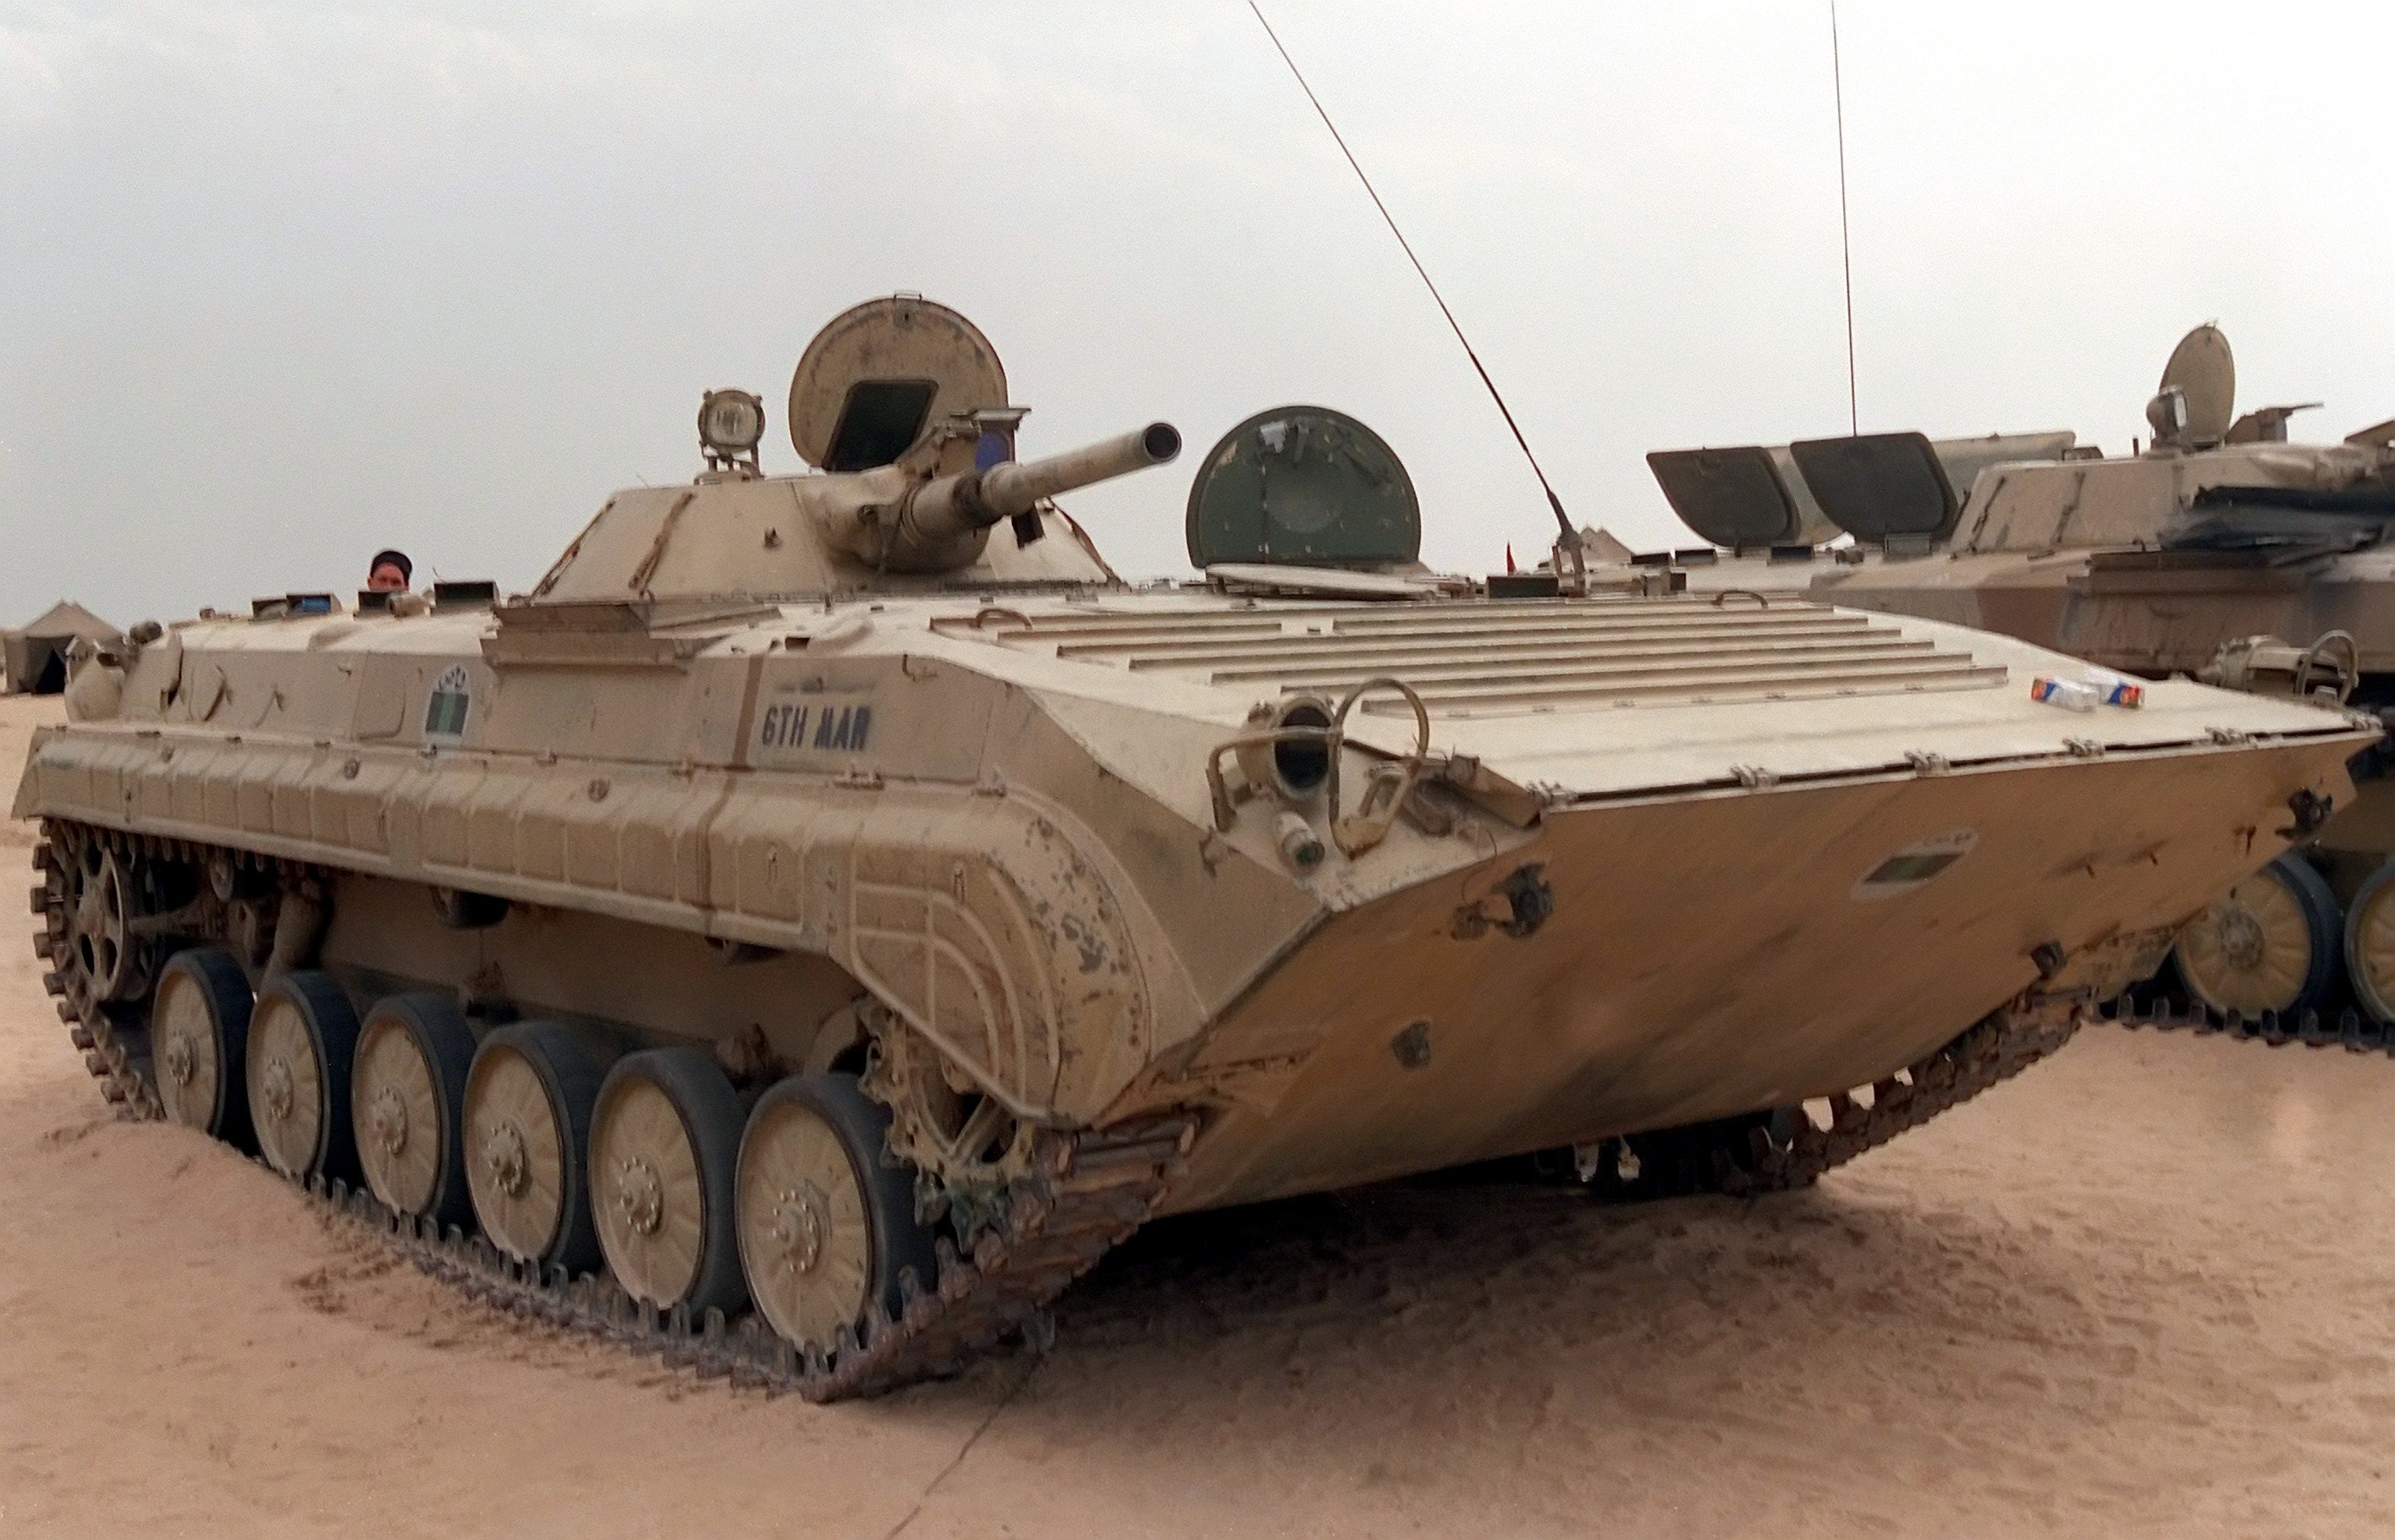 Russian BMP-1 amphibious infantry fighting vehicle